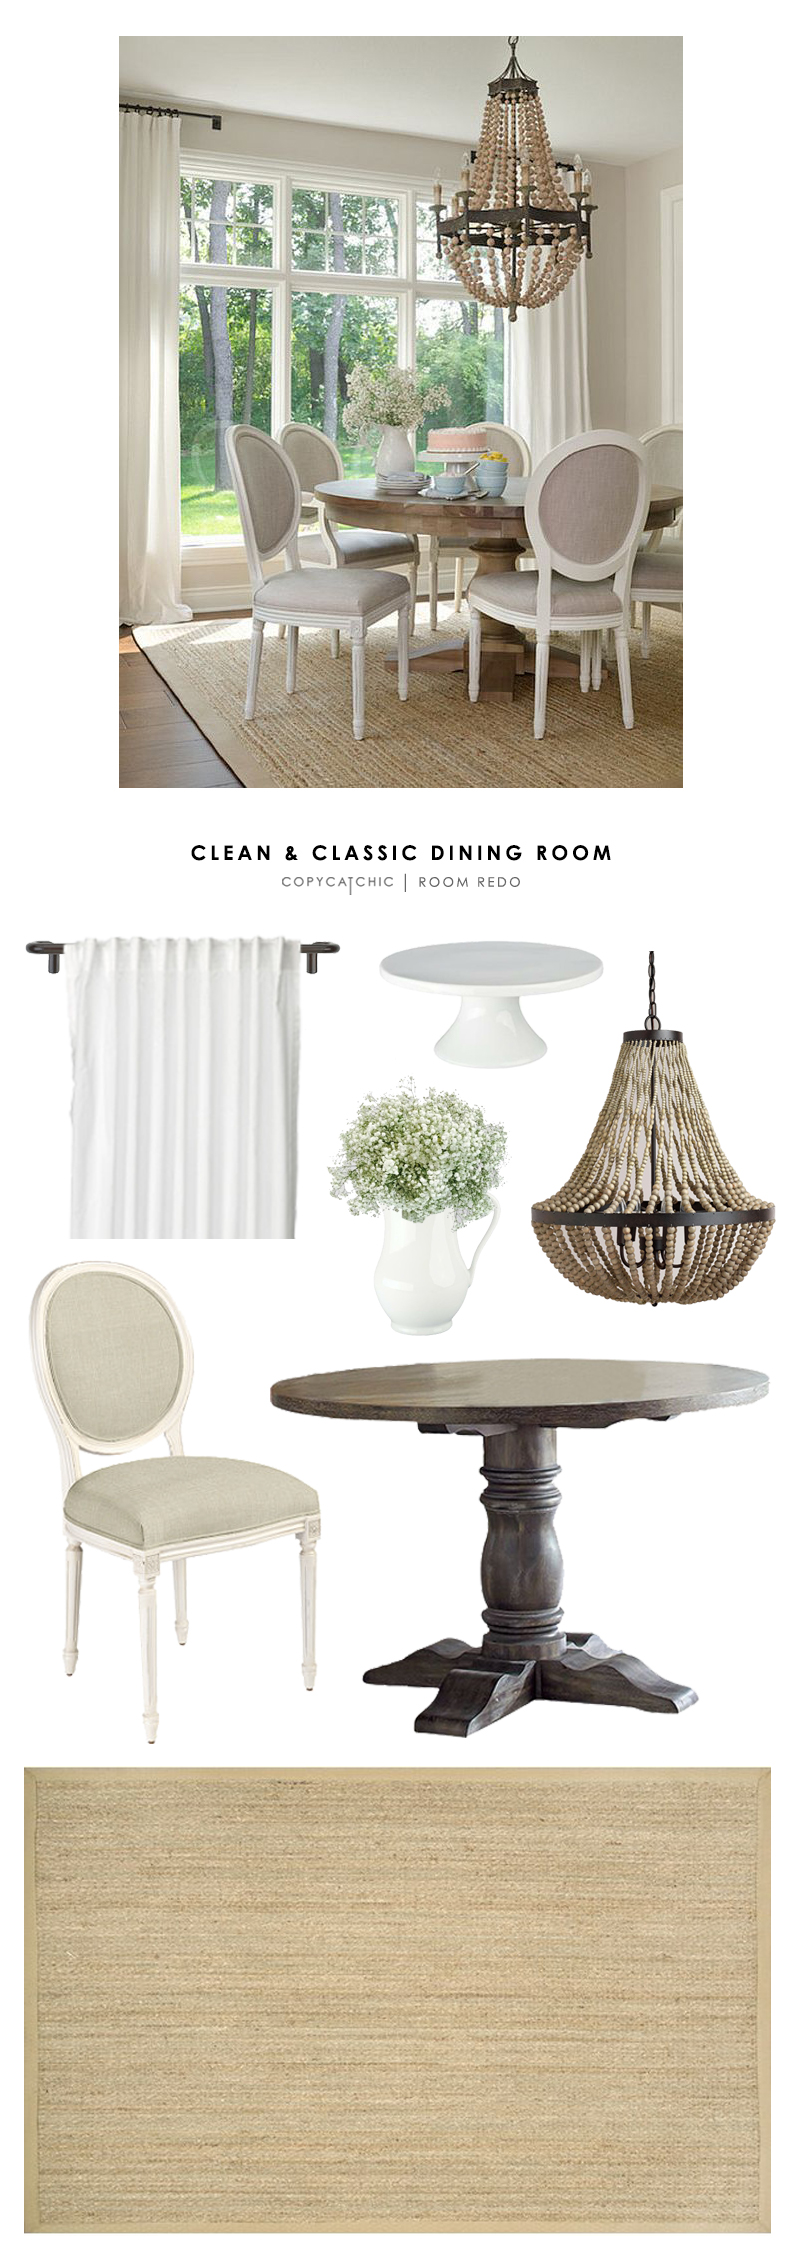 copy cat chic room redo clean and classic dining room copycatchic